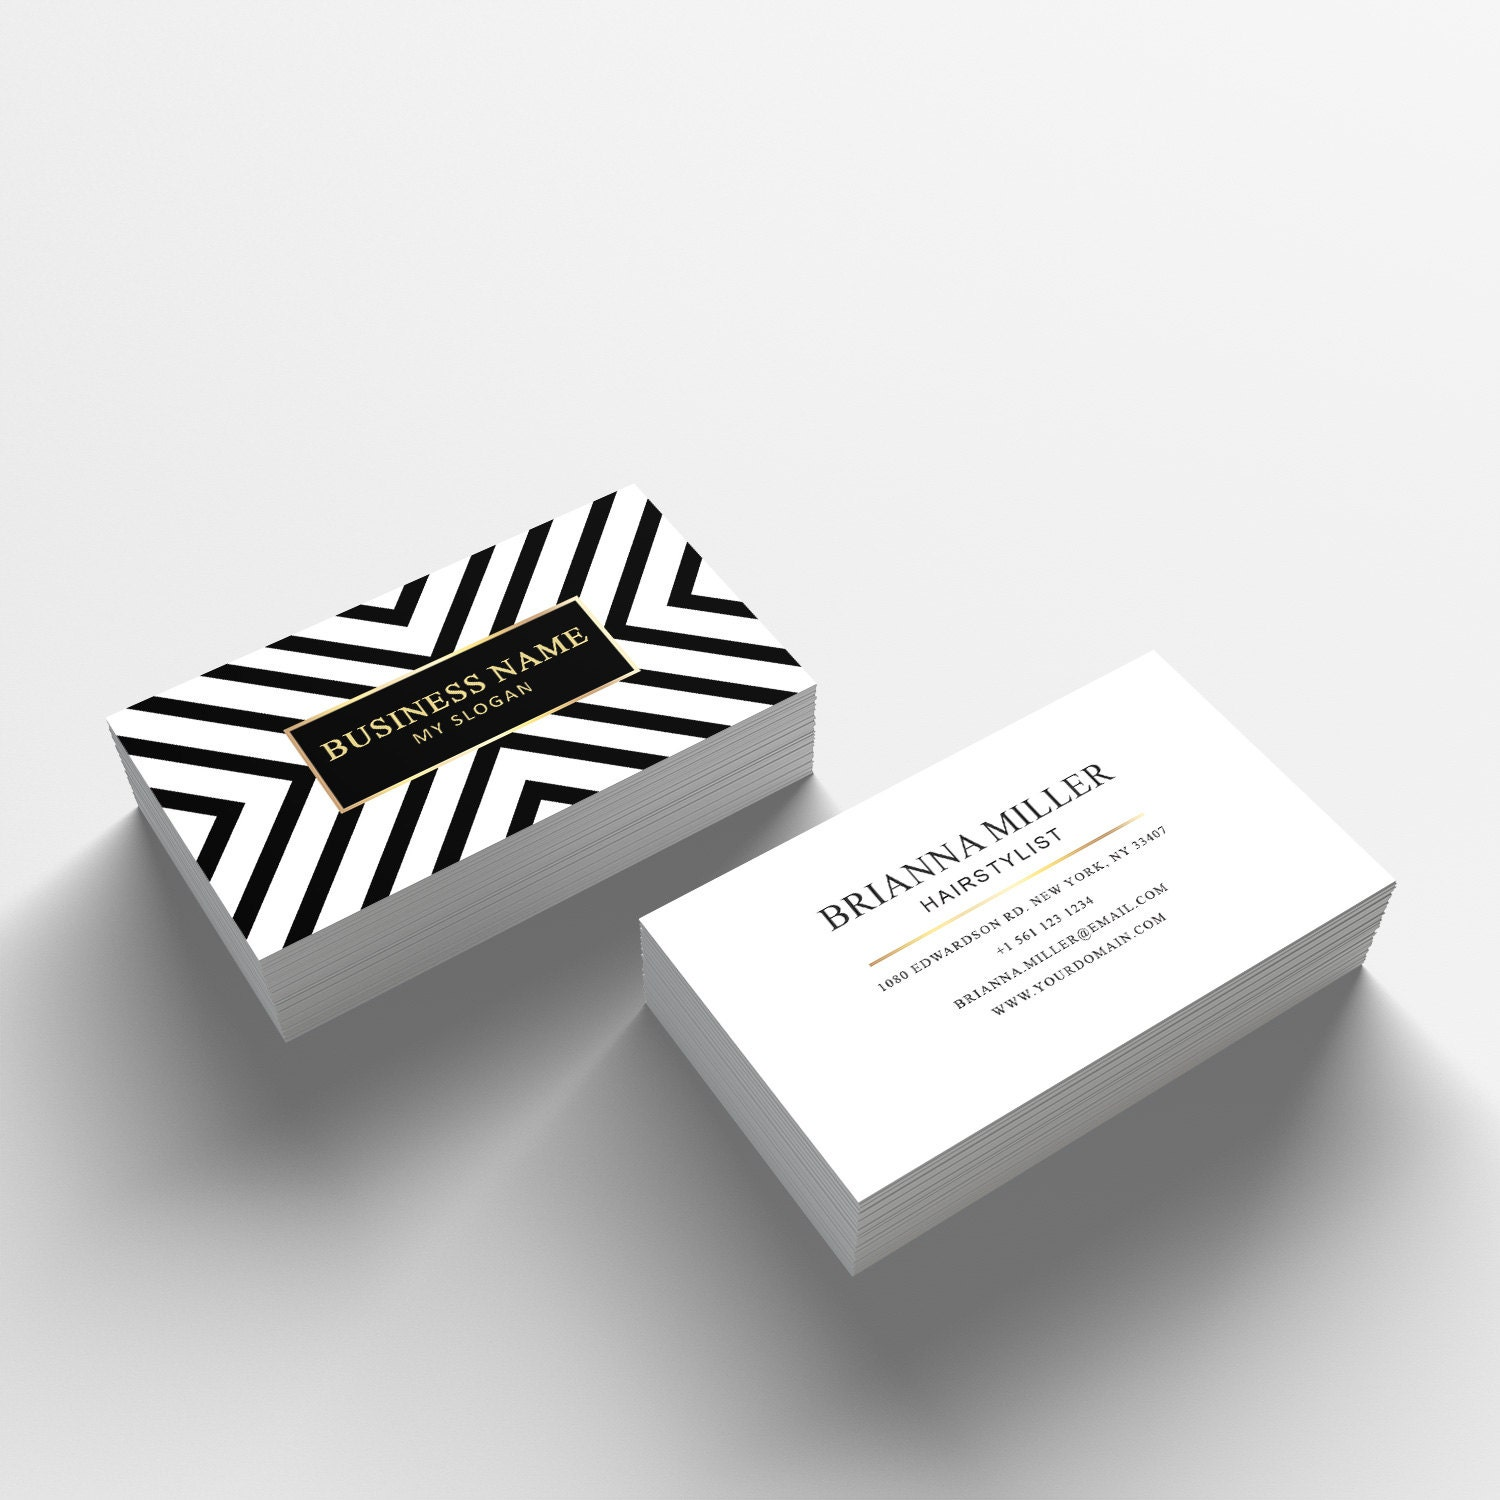 Business Card Template Sided Business Card Design - Appointment business card template